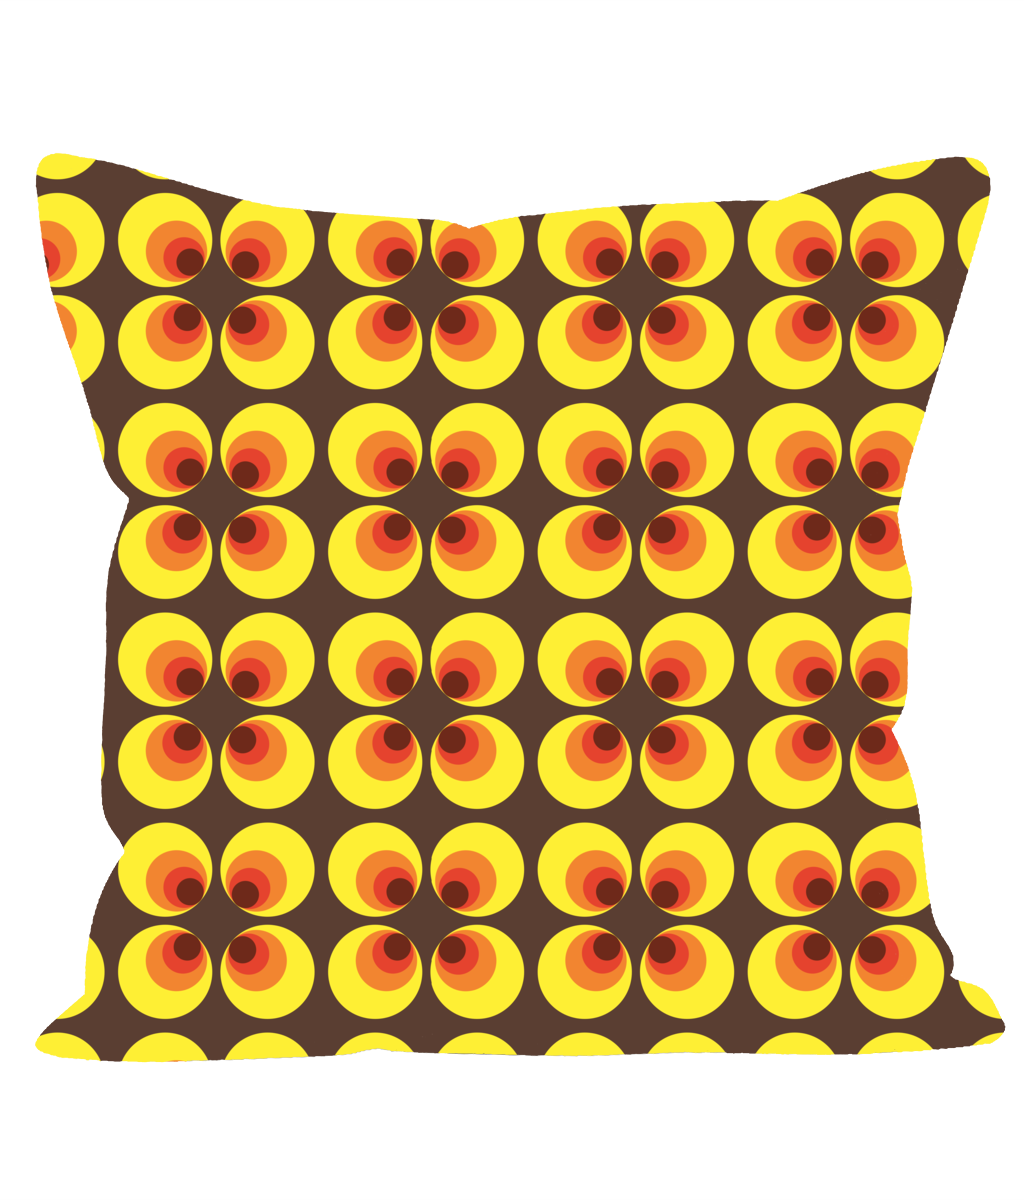 Retro Vintage Throw Cushion with Geometric Circle Pattern in 1960's 1970's Style.